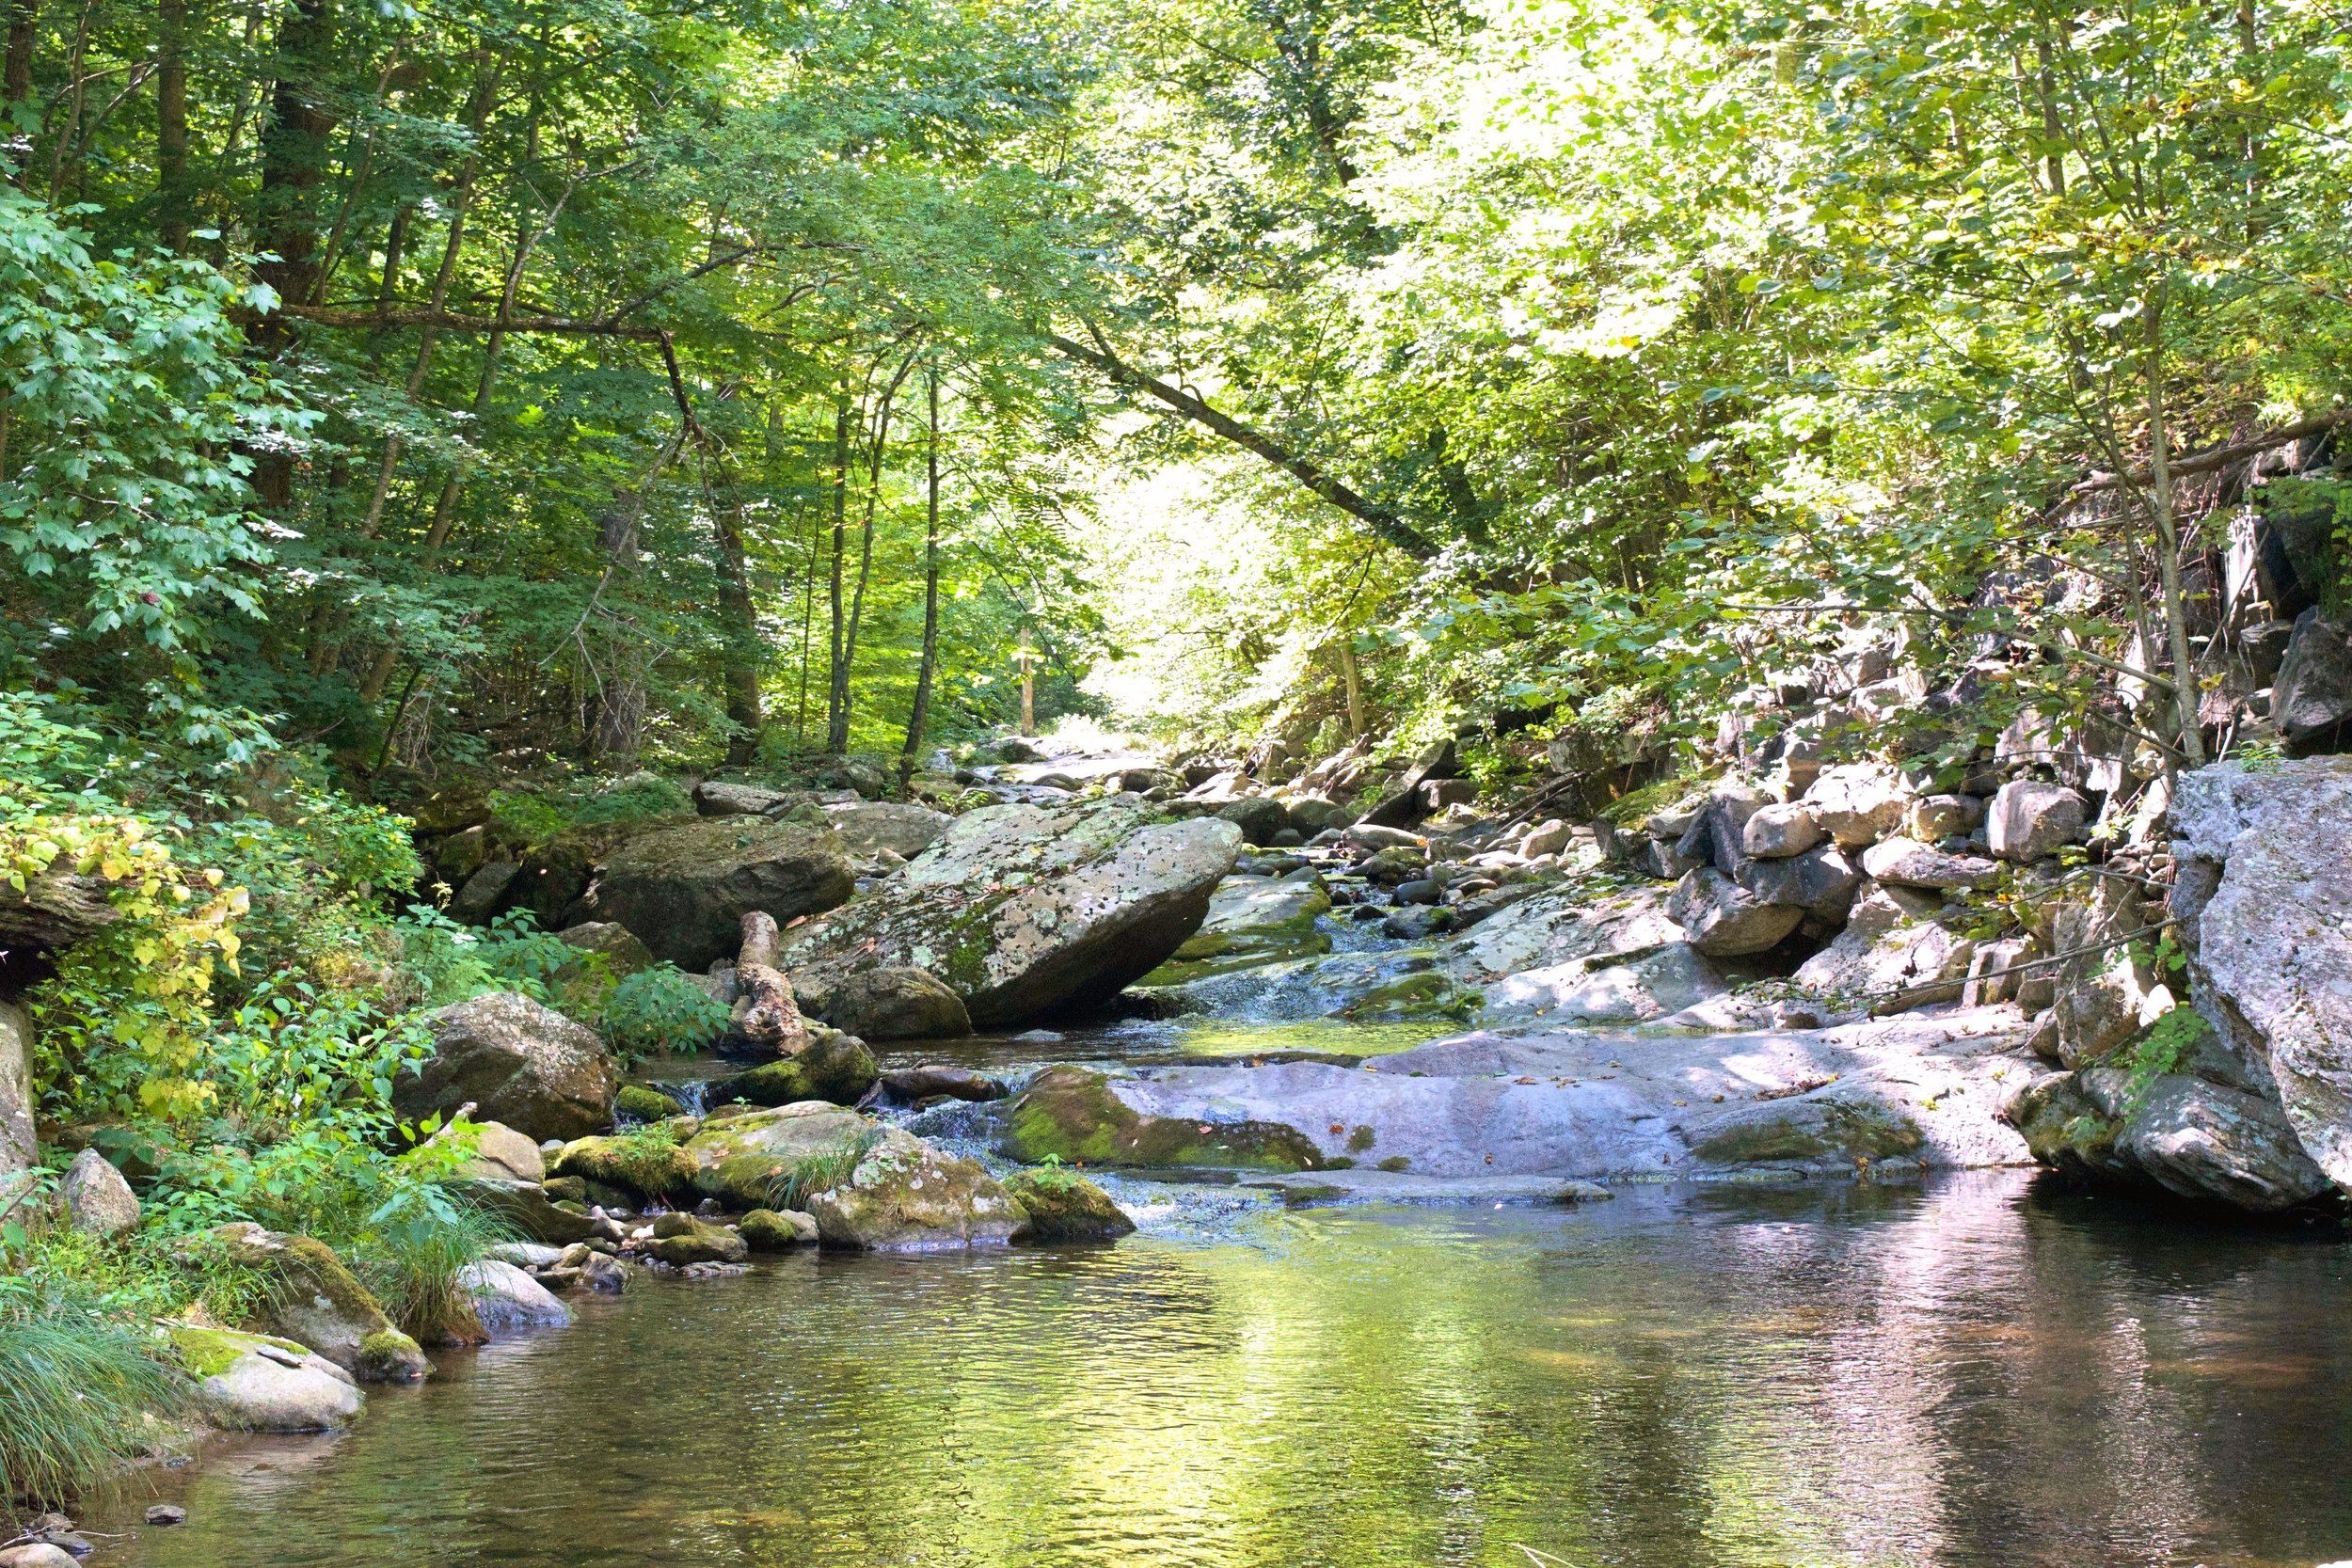 A really pretty swimming hole high on the Rapidan River, taken while fly fishing a few weeks ago.